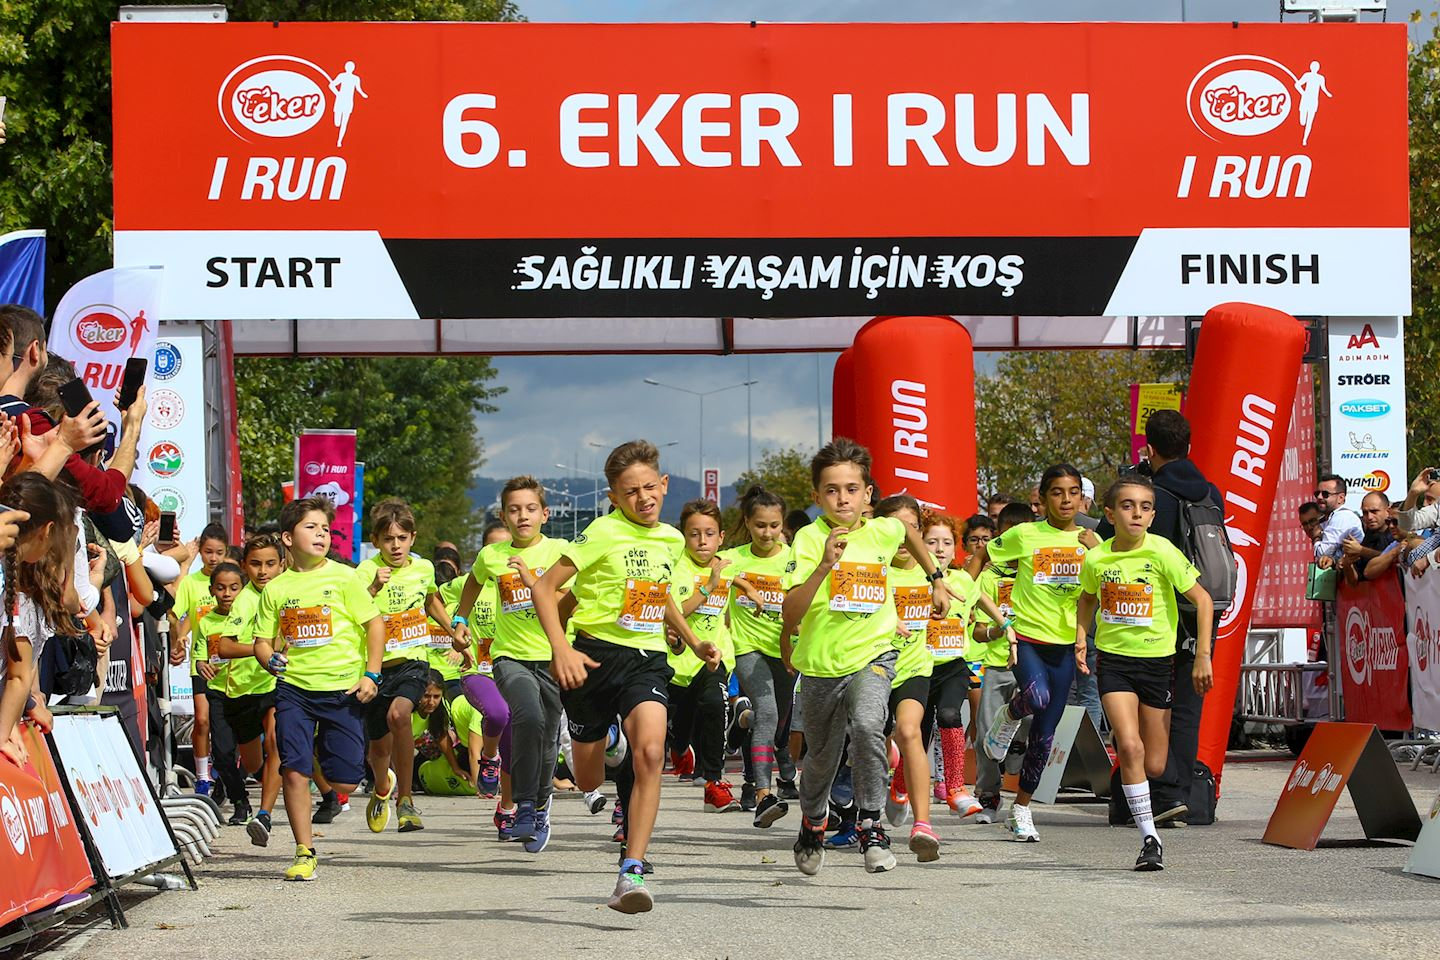 eker i run marathon